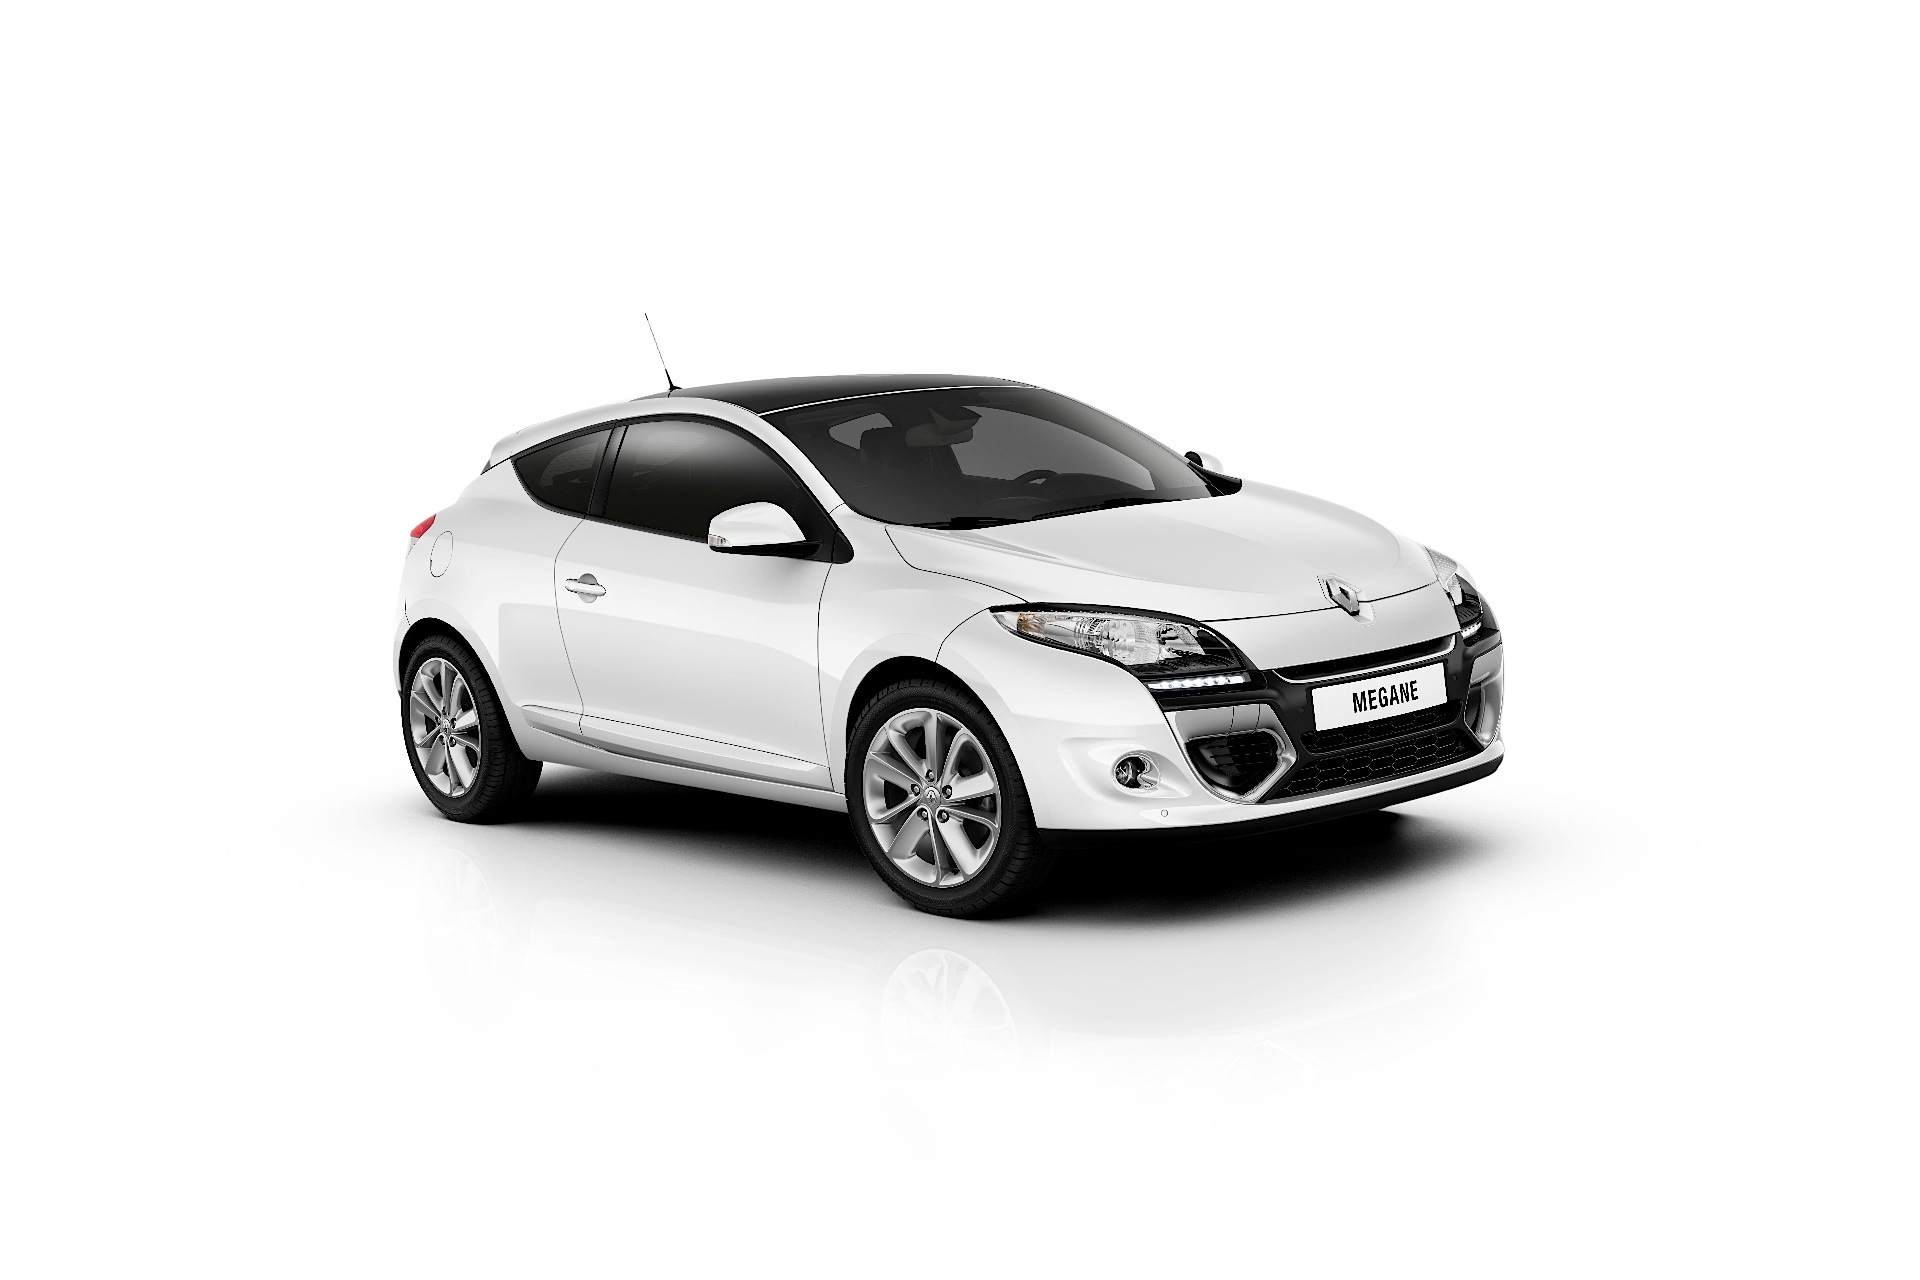 renault megane coupe specs 2008 2009 2010 2011 2012. Black Bedroom Furniture Sets. Home Design Ideas